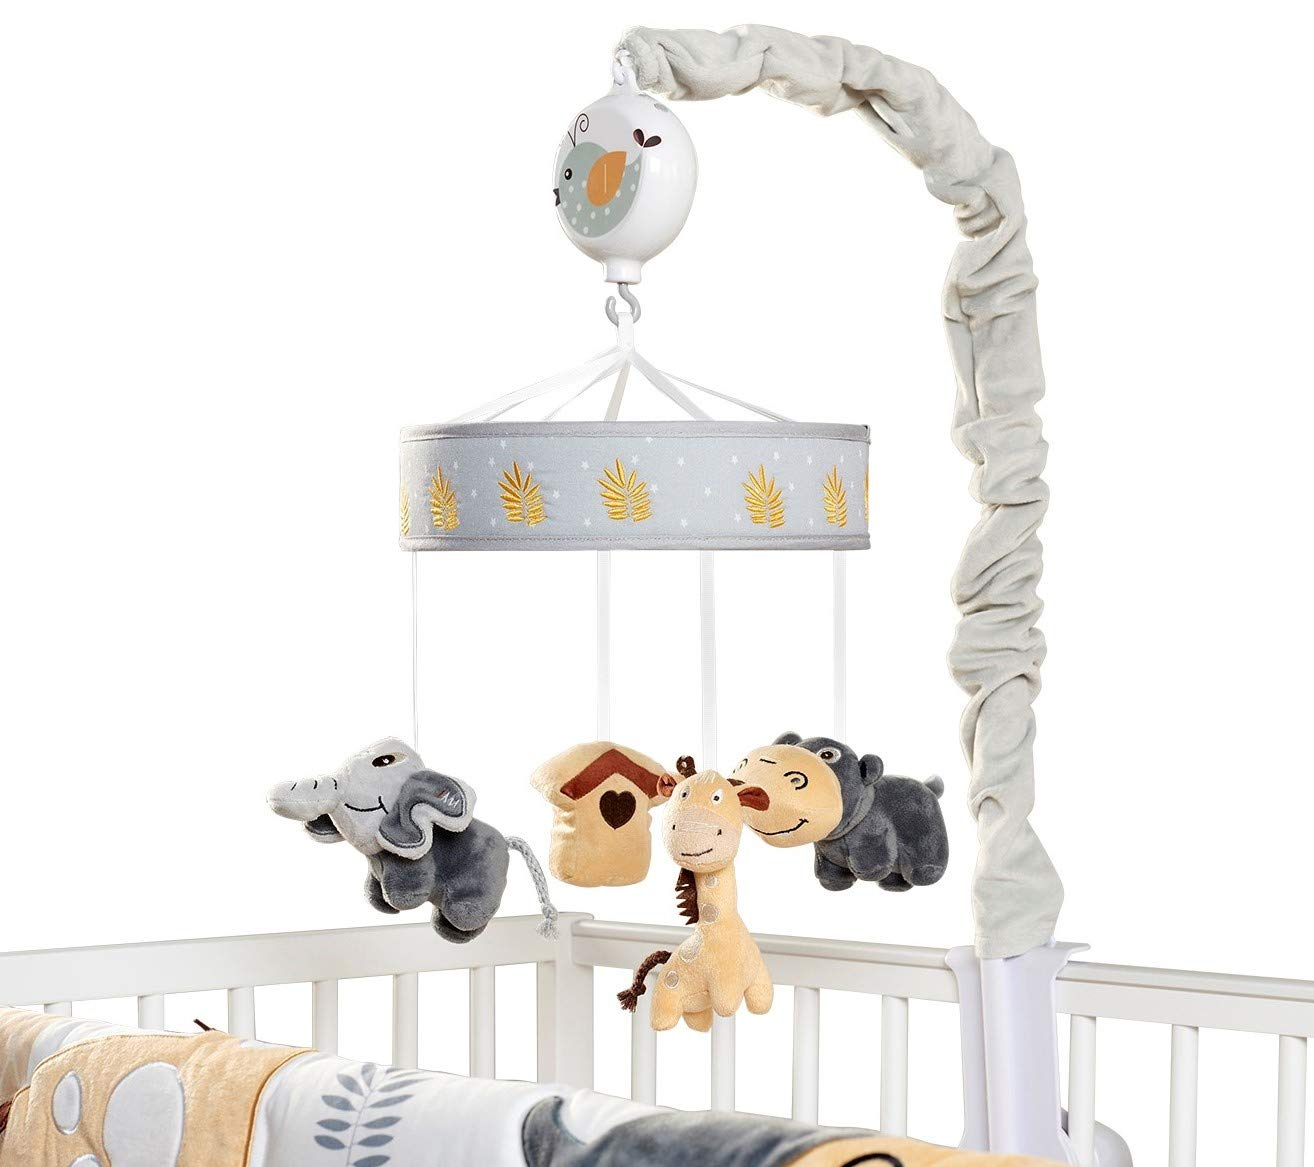 Oberlux Musical Baby Crib Mobile - Jungle Animal Safari Theme Baby Soother, Gray, Tan, Baby Toy Animals